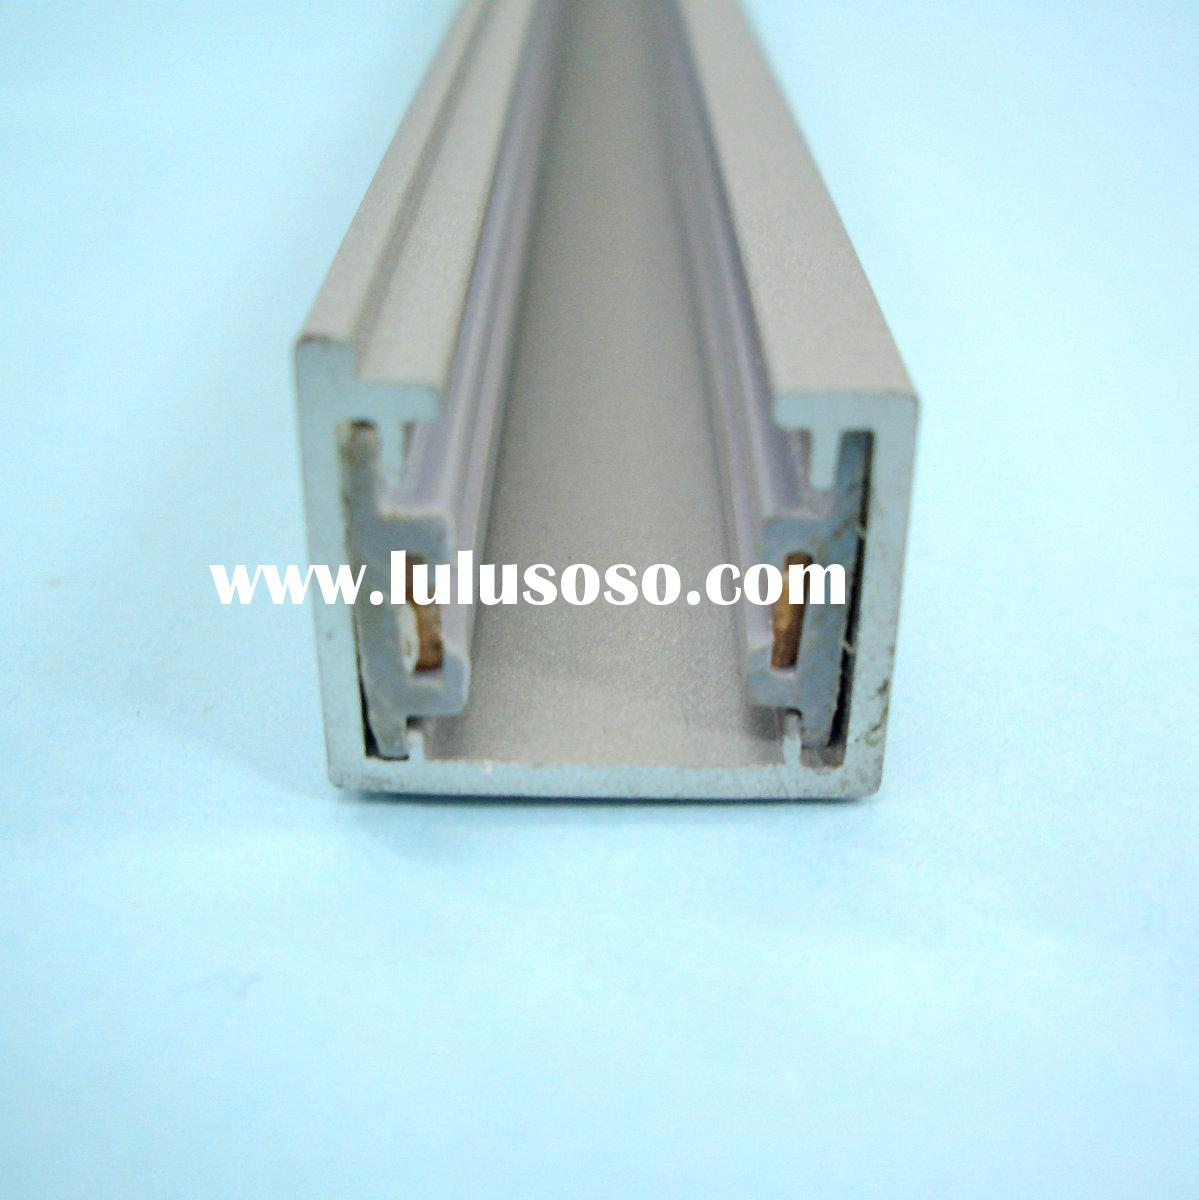 Transformer and Low Voltage - Accessories Track Lighting: Tools